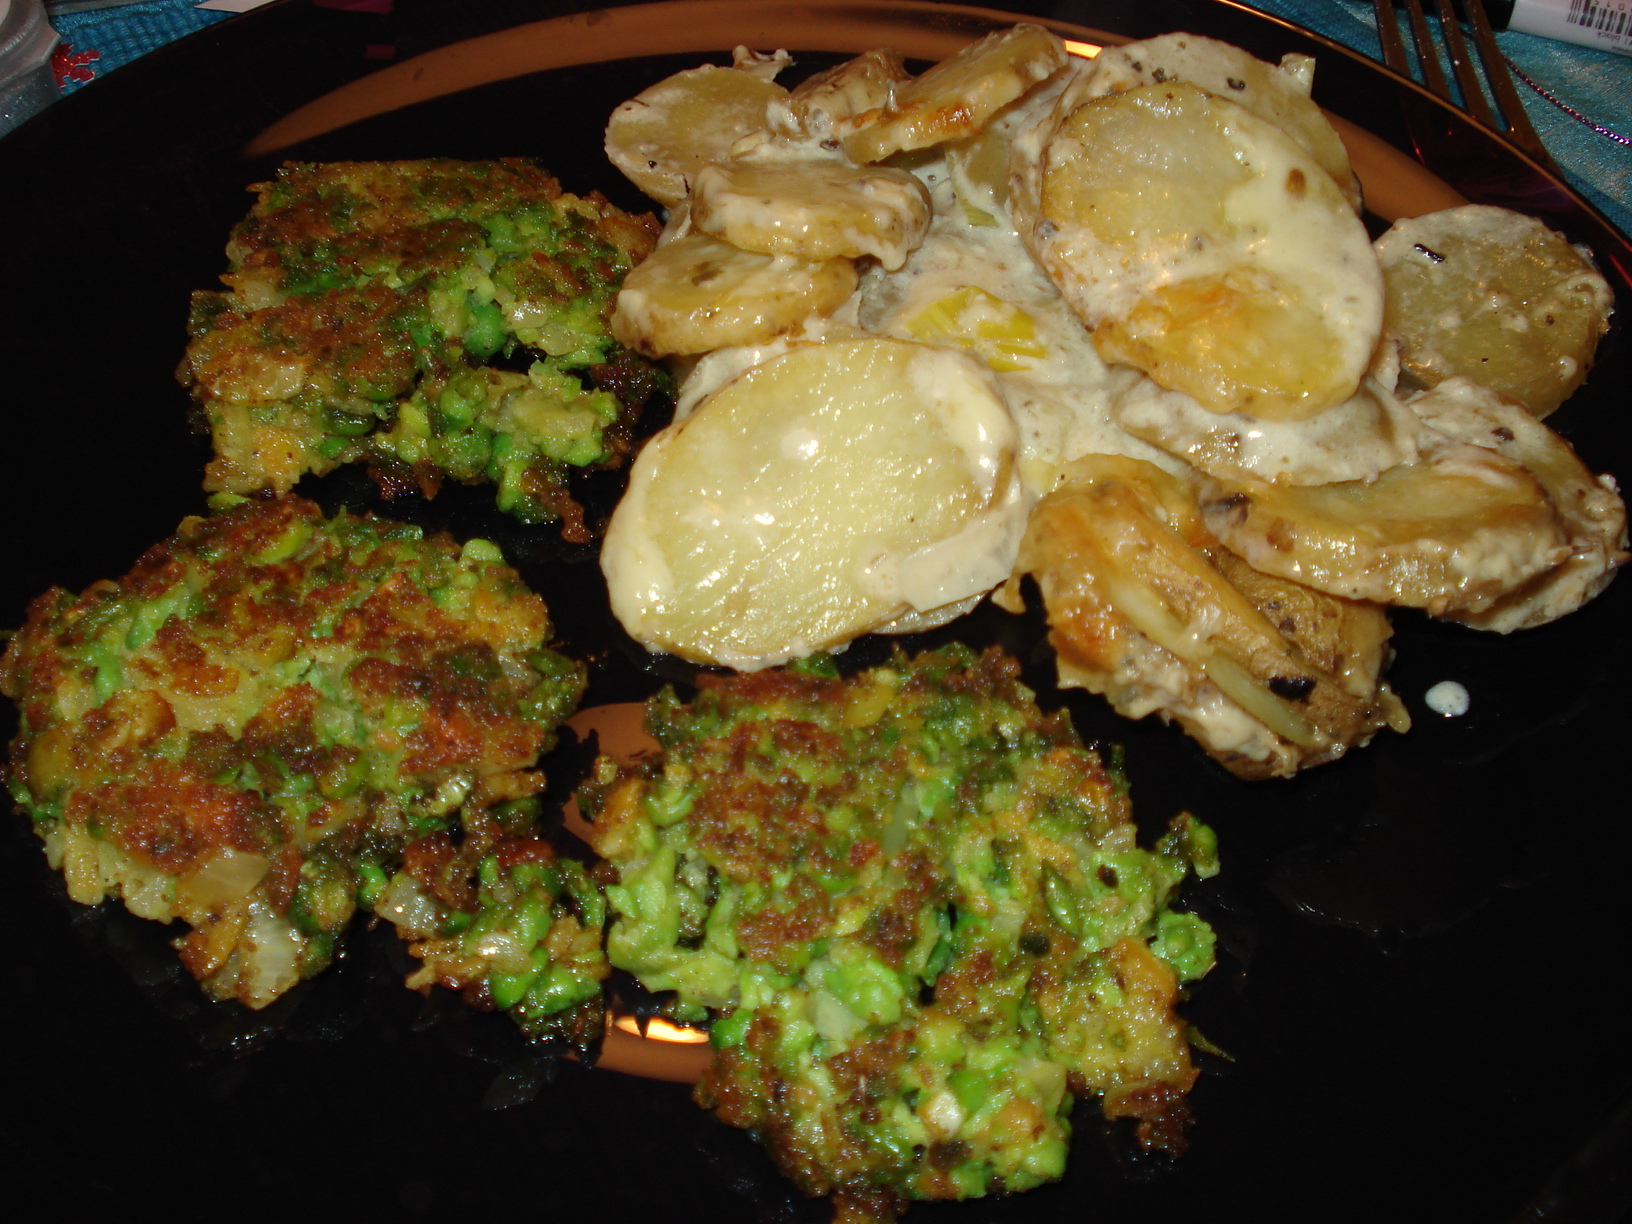 Green pea and carrot patties with potato gratin